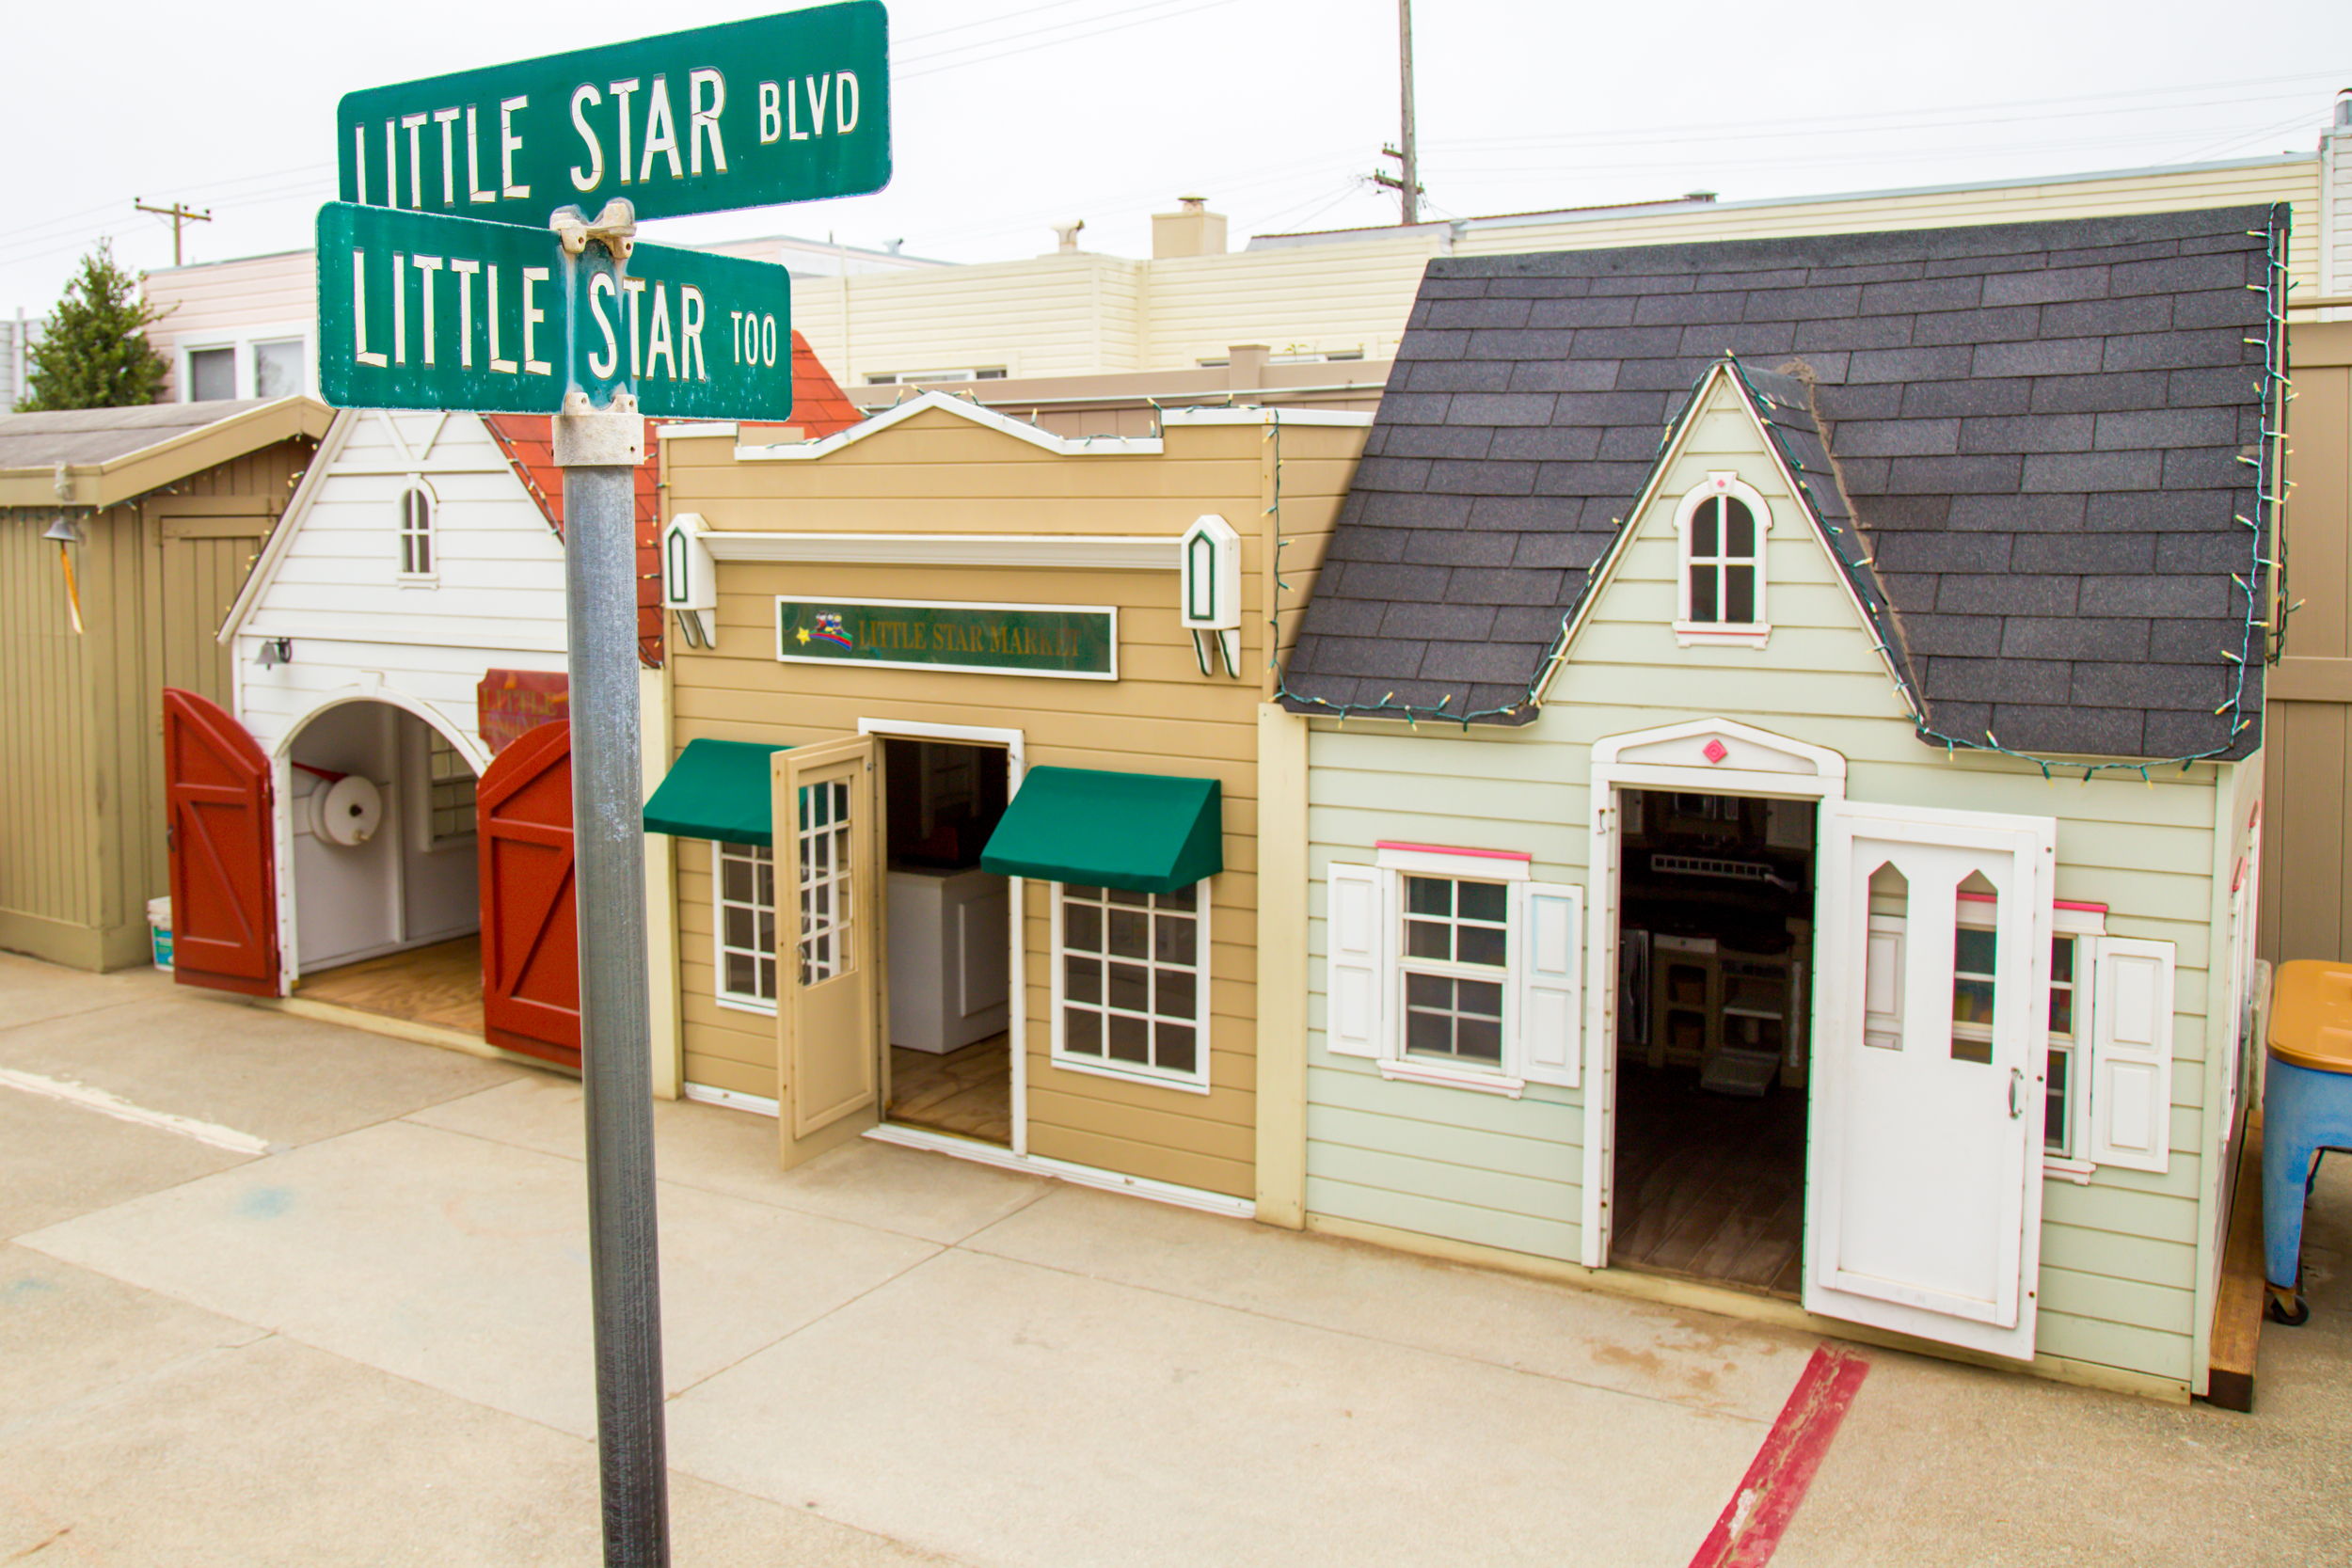 """Little Star Preschool """"Too"""" is our second location, located at 1105 Quintara Street. Pictured here are our three outdoor dramatic play areas - great for a quieter moment with a few friends or to keep warm on a foggy San Francisco day."""